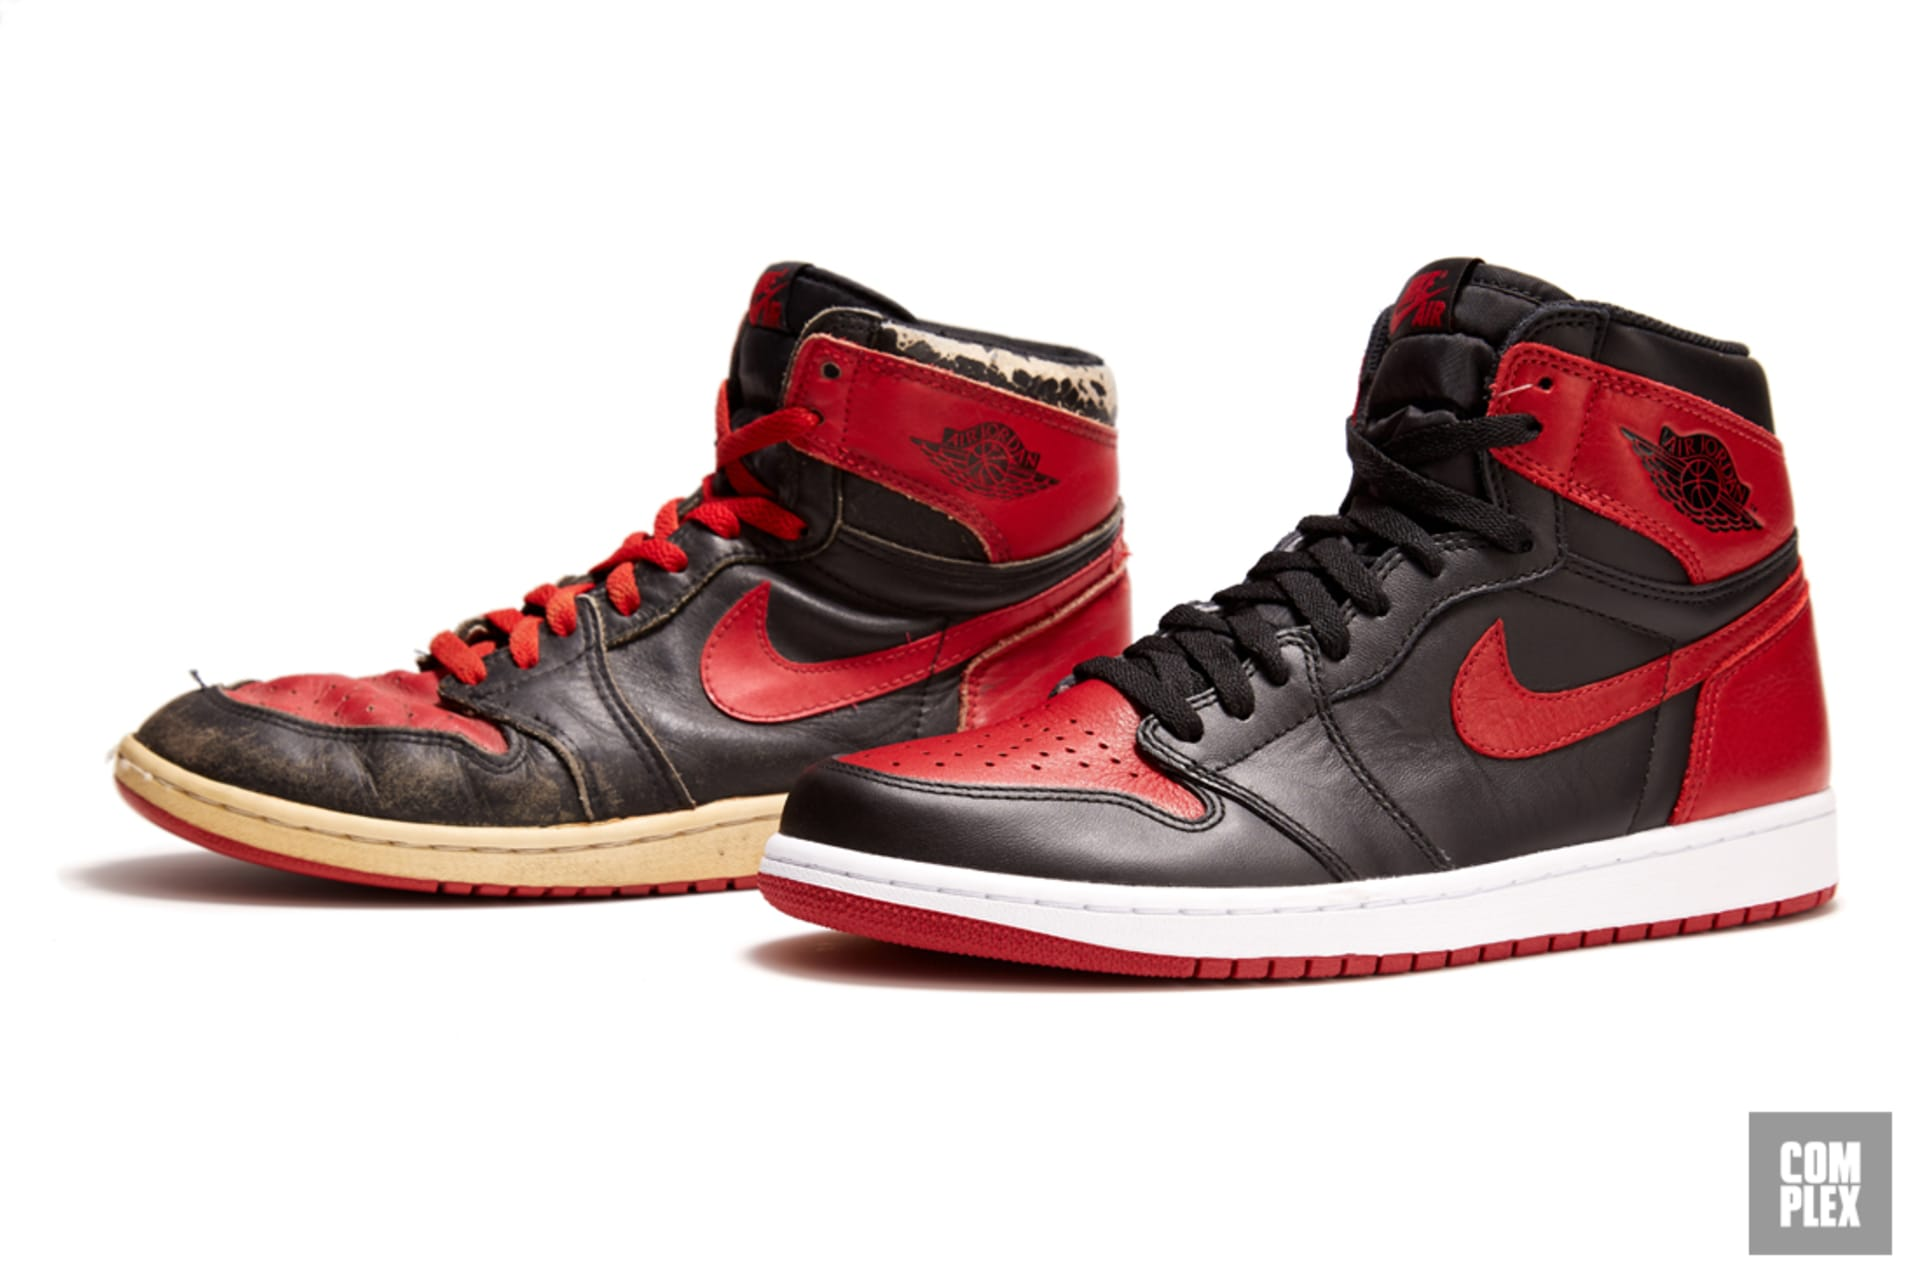 3efa3c1dc22 The Evolution of the Black and Red Air Jordan 1, the Sneaker That ...